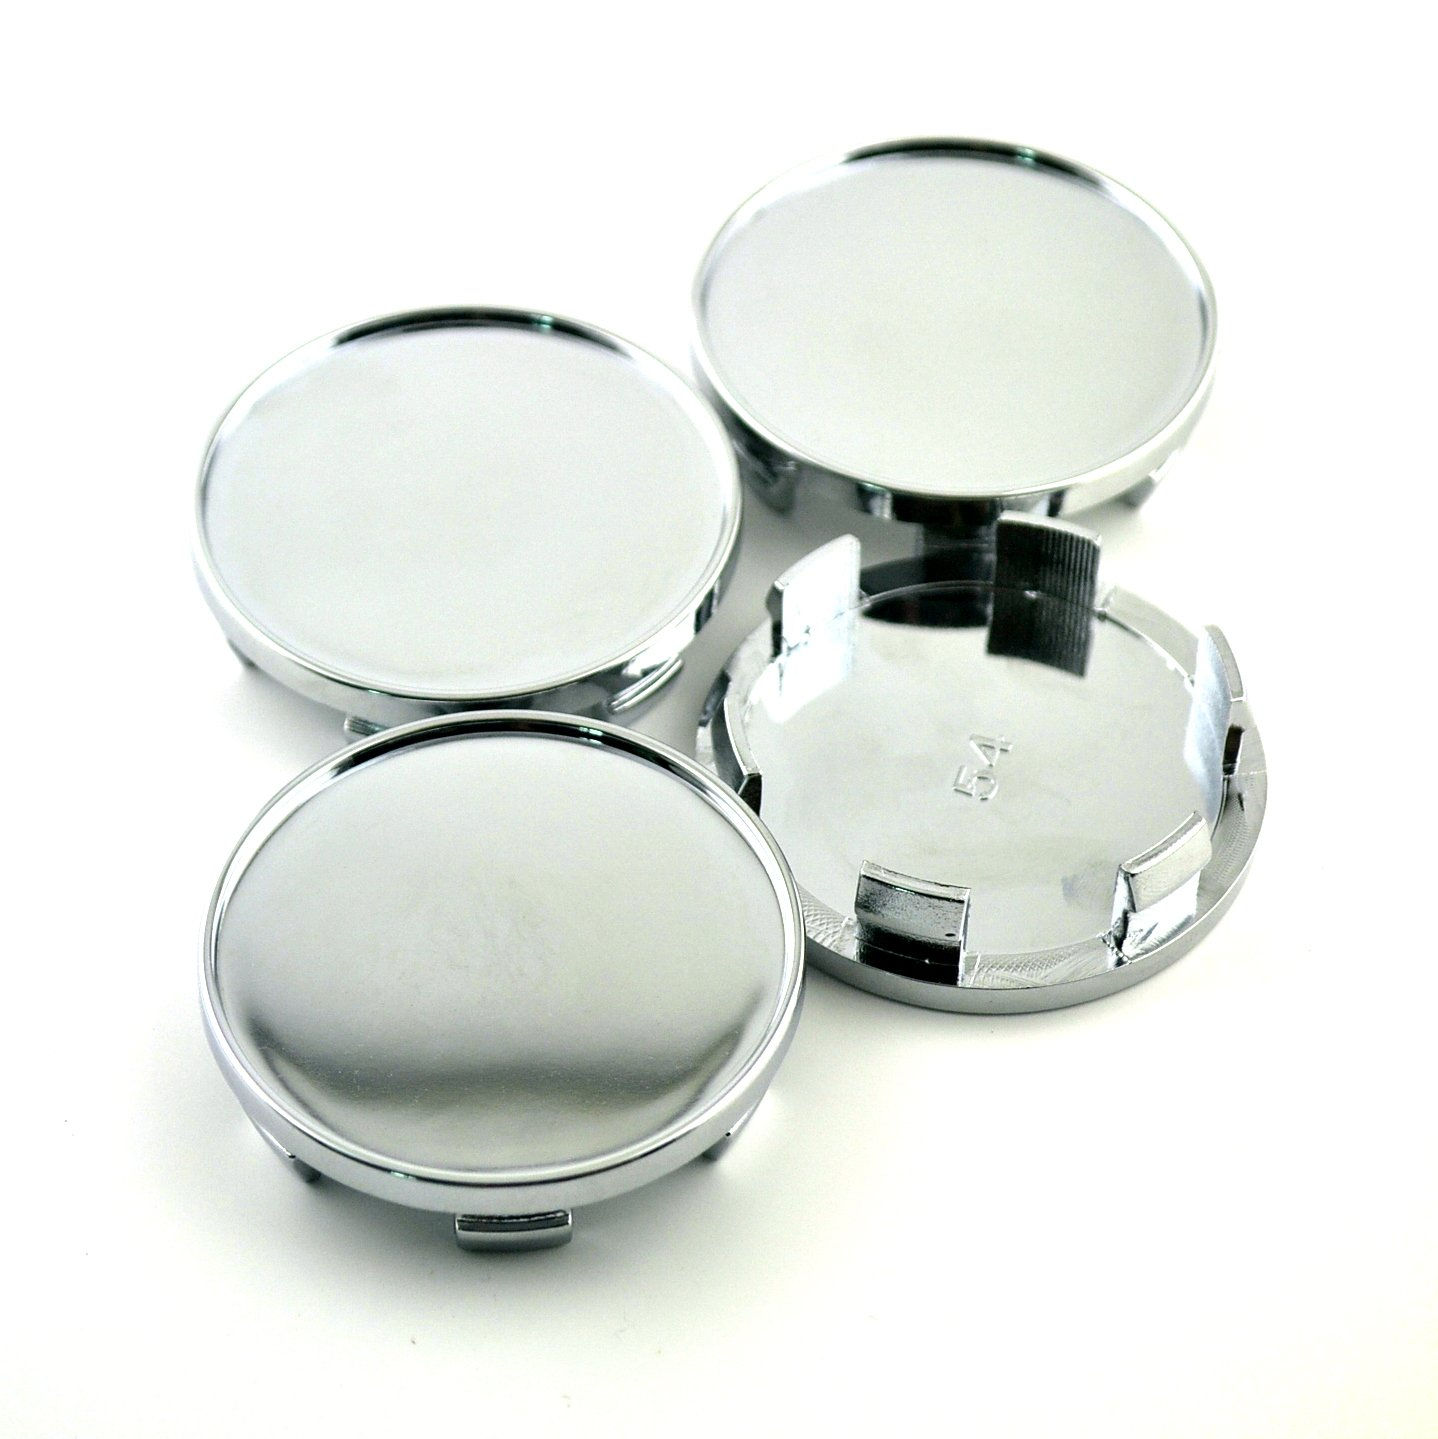 54mm Silver ABS Car Wheel Center Hub Caps Set of 4 by General (Image #2)